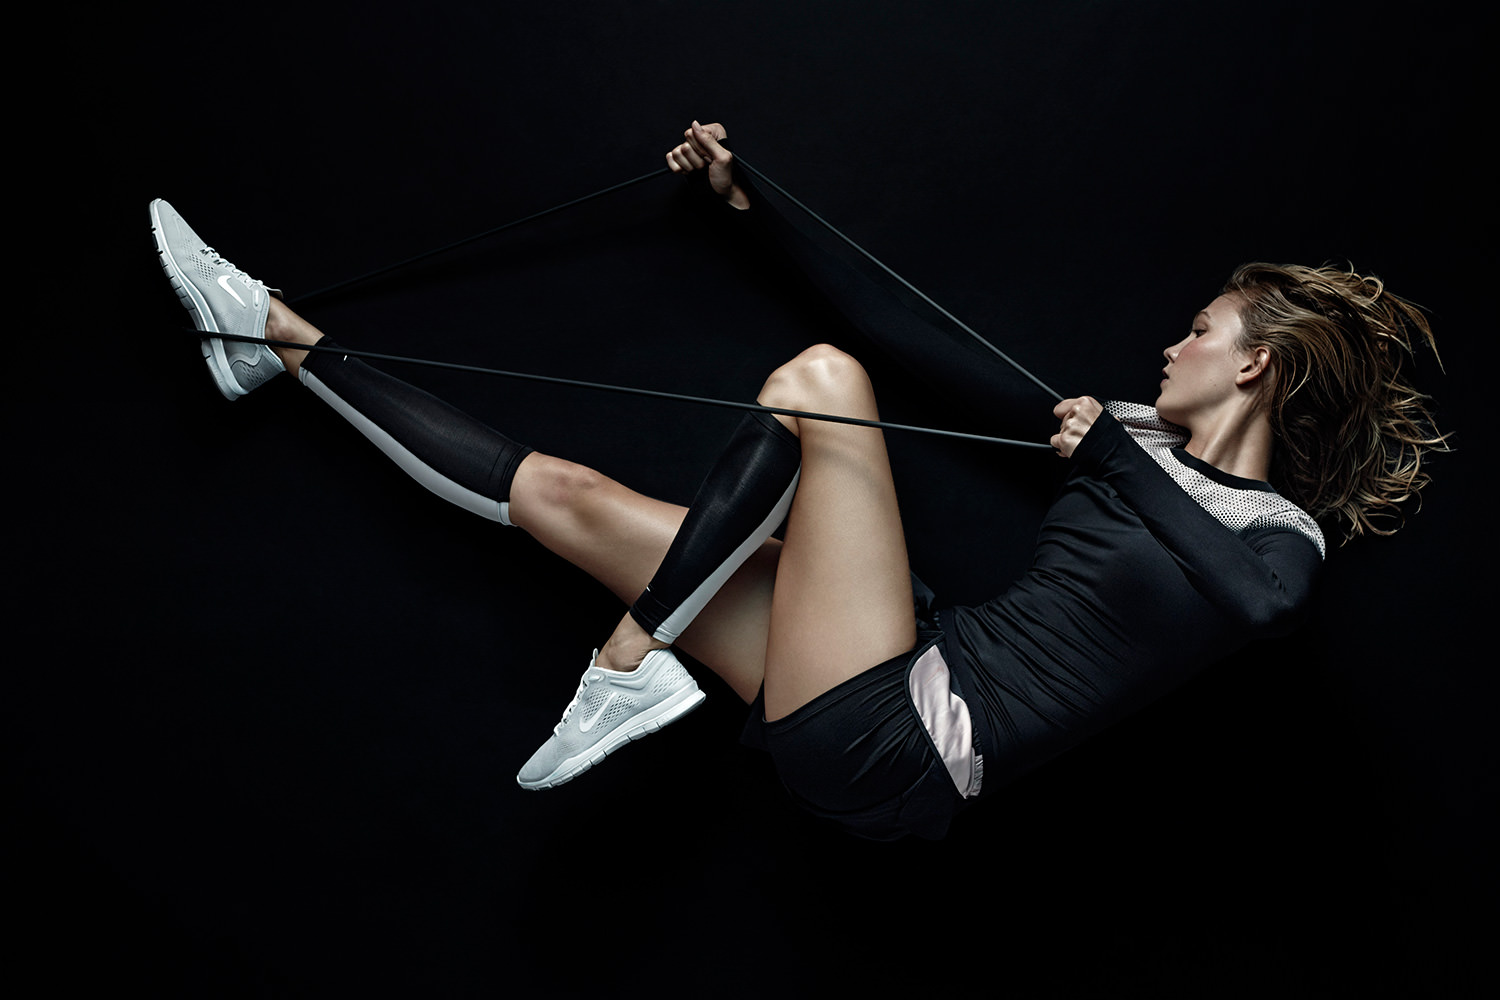 nike-pedro-lourenco-collection-karlie-kloss-02